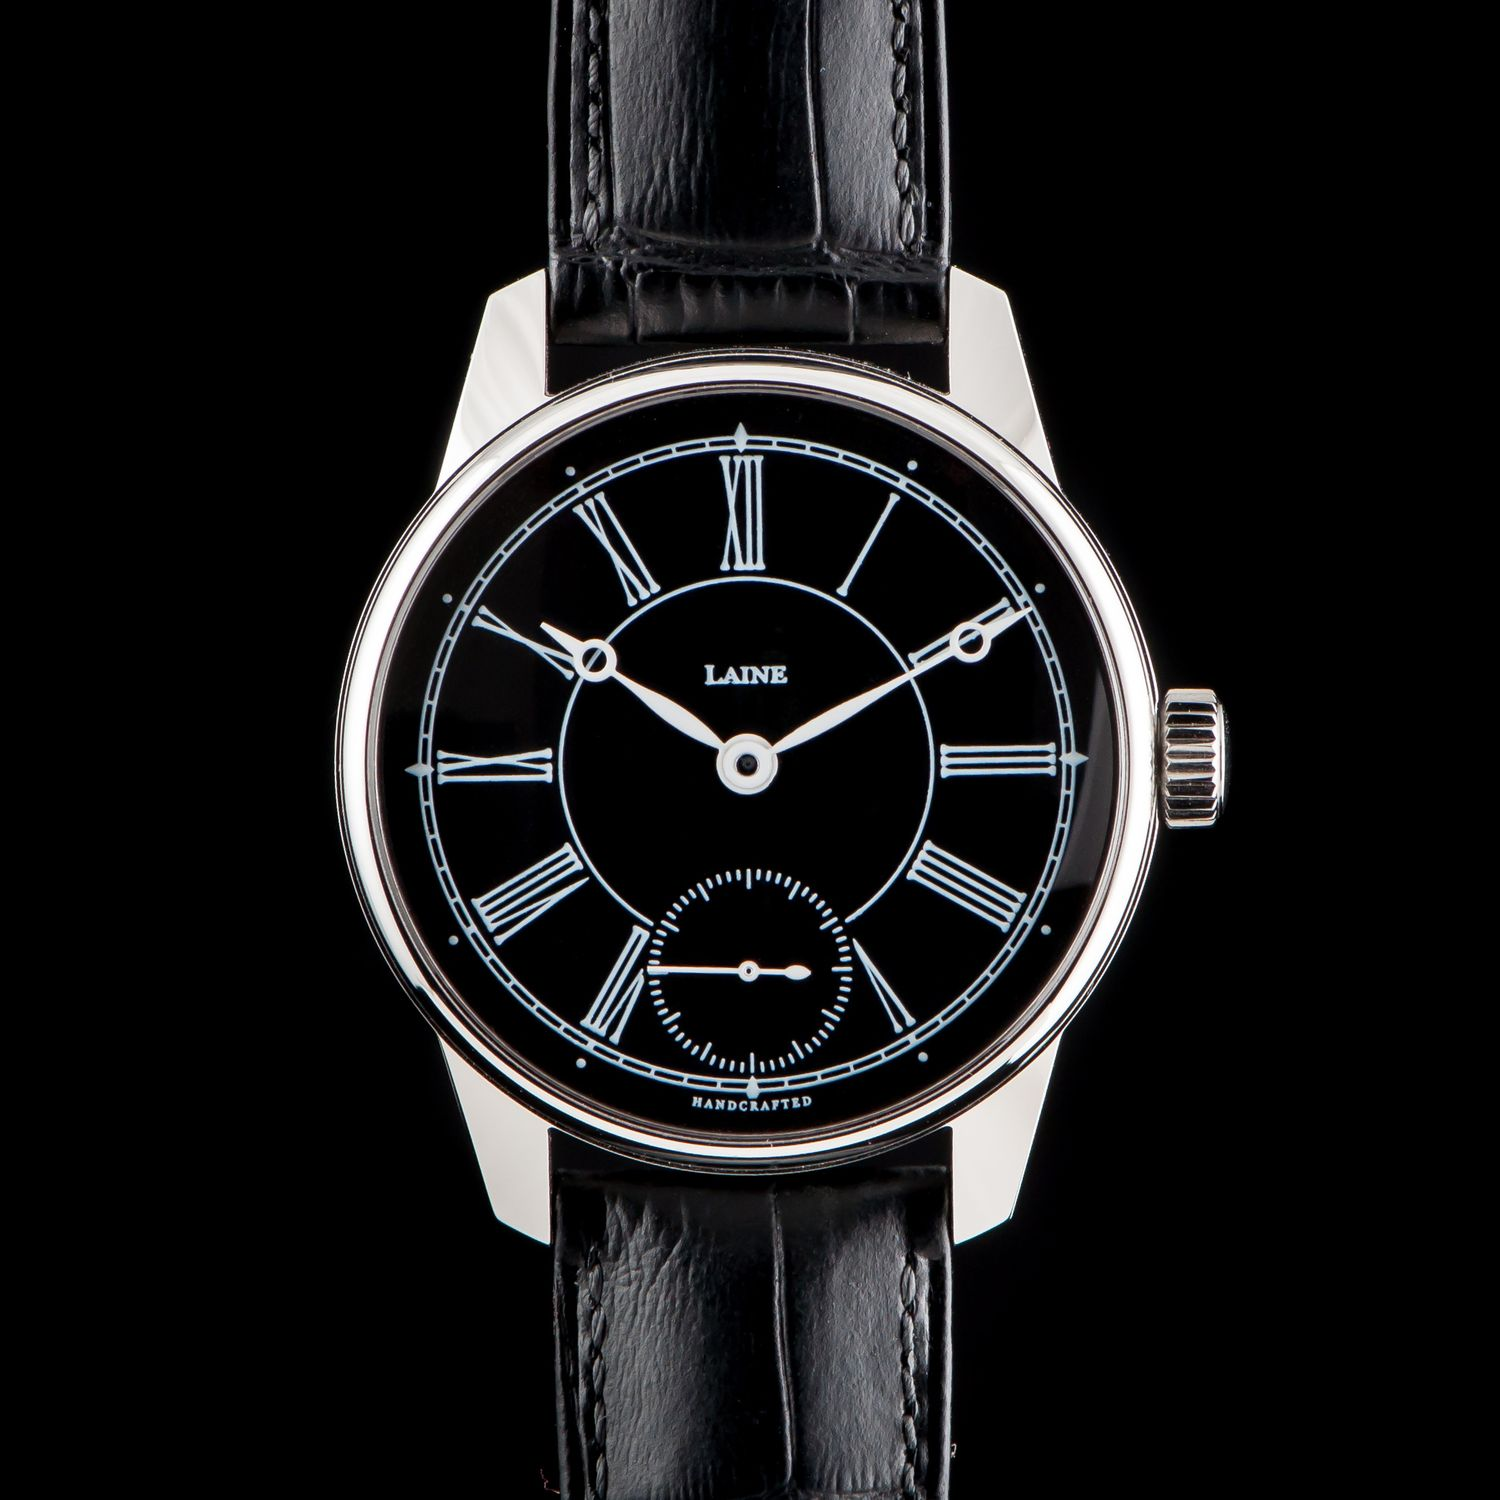 Laine 1817 watch 4